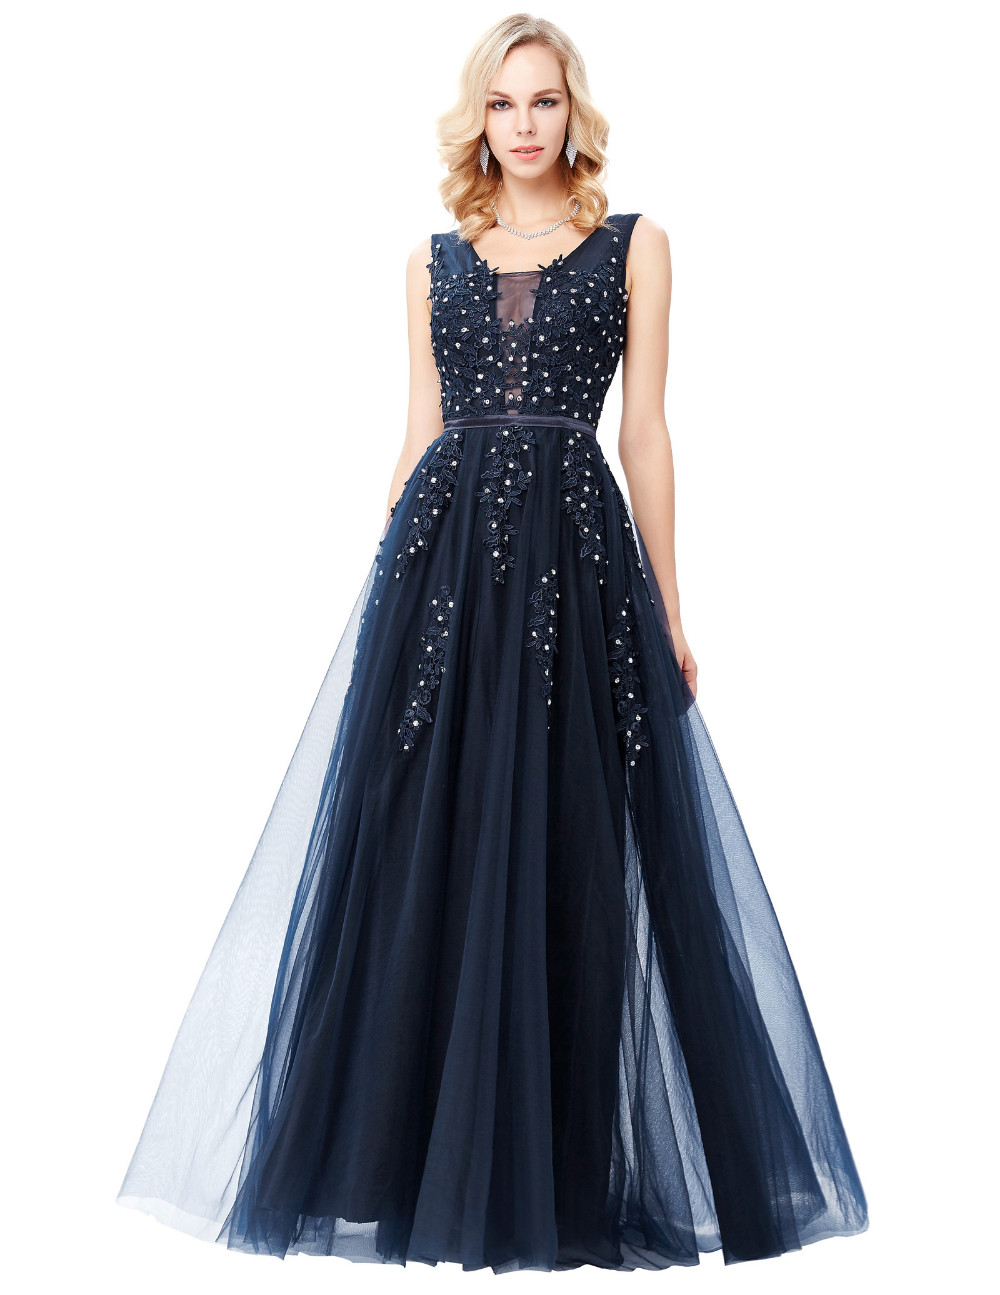 Grace Karin Tulle Appliques Celebrity Prom Dress Sexy V Back Sleeveless Long Royal Blue Robes De Soiree 2017 Longue Prom Dresses 9